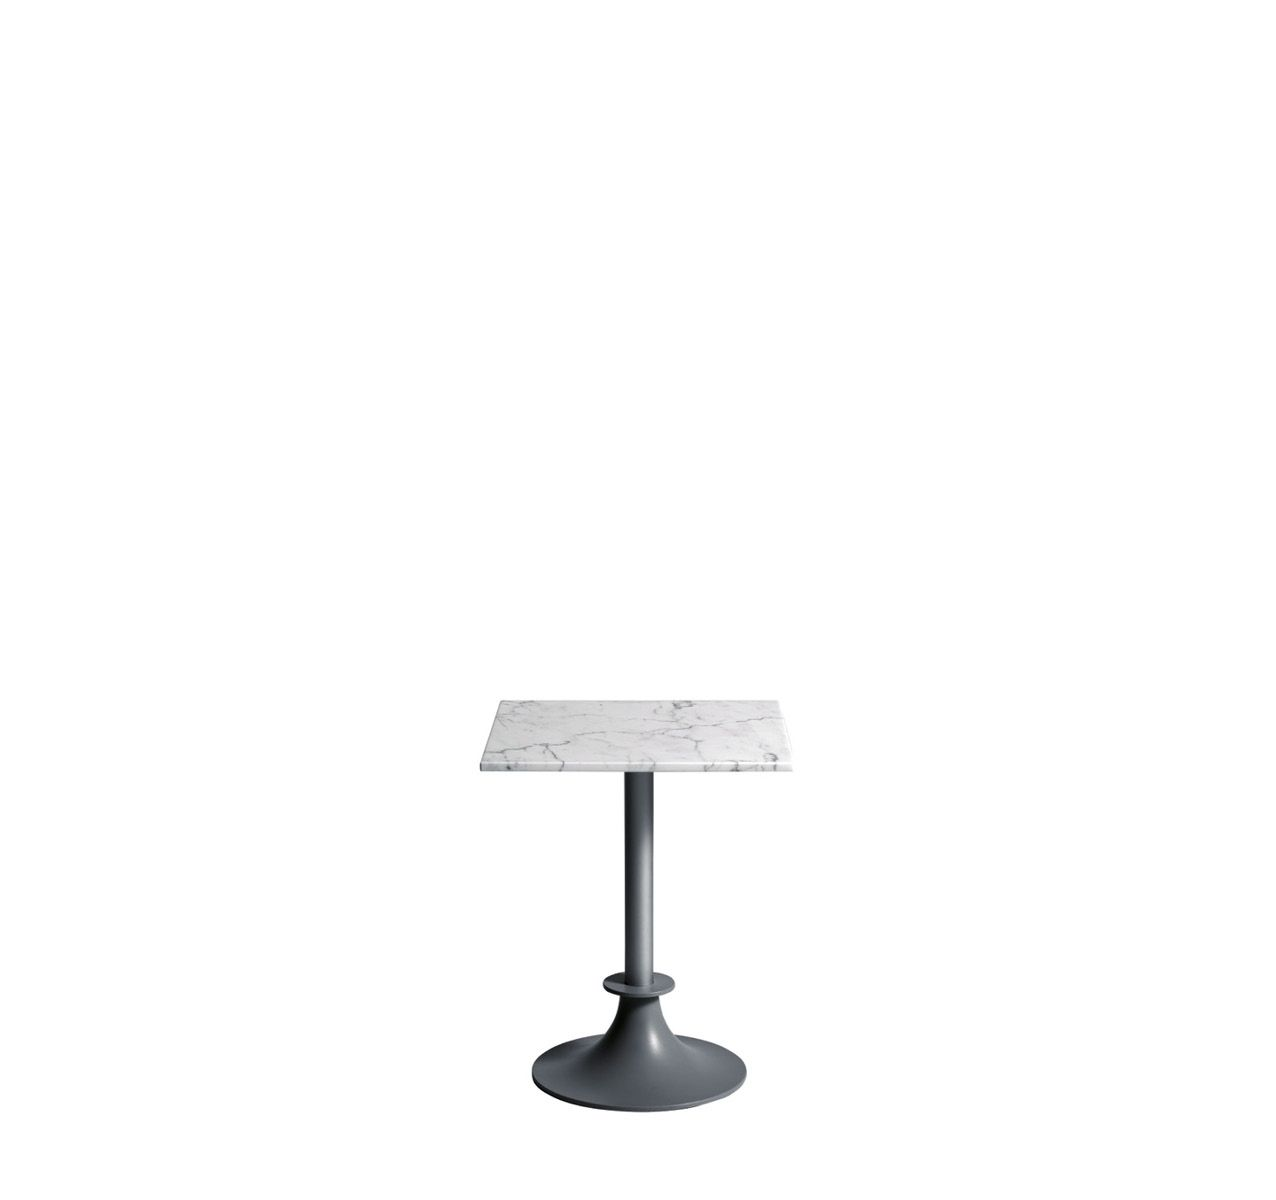 Lord Yi Square Table White Carrara Marble, No